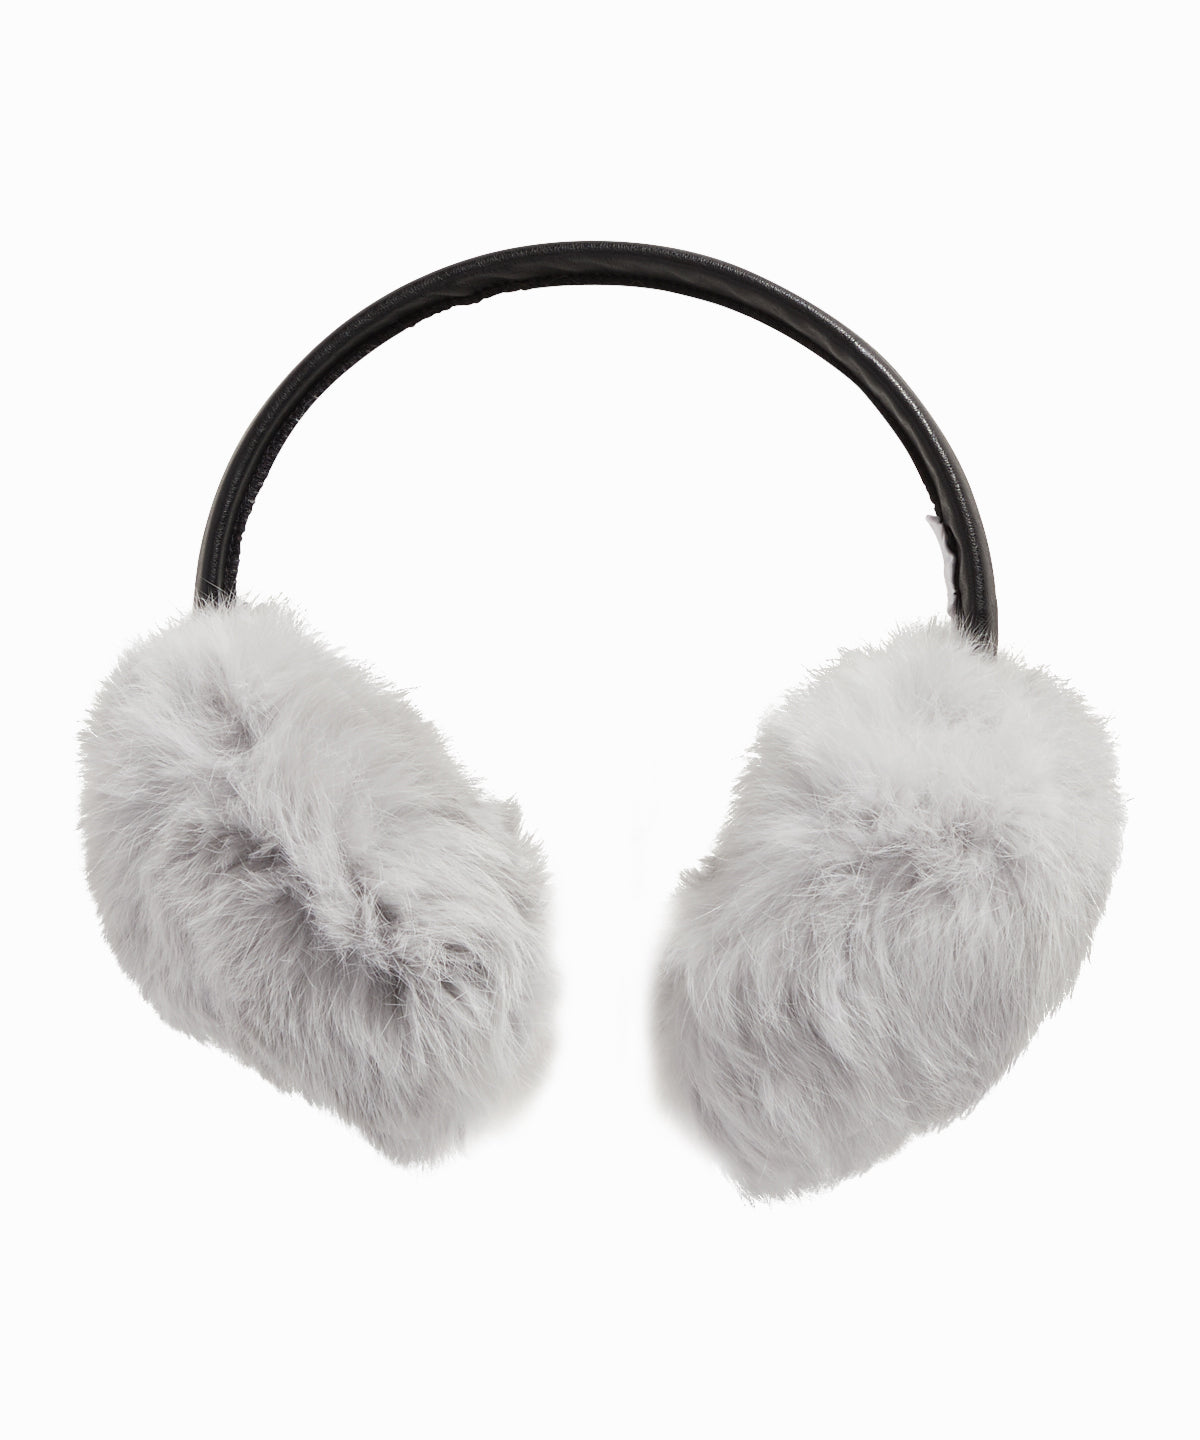 Silver Rabbit Fur Ear Muffs